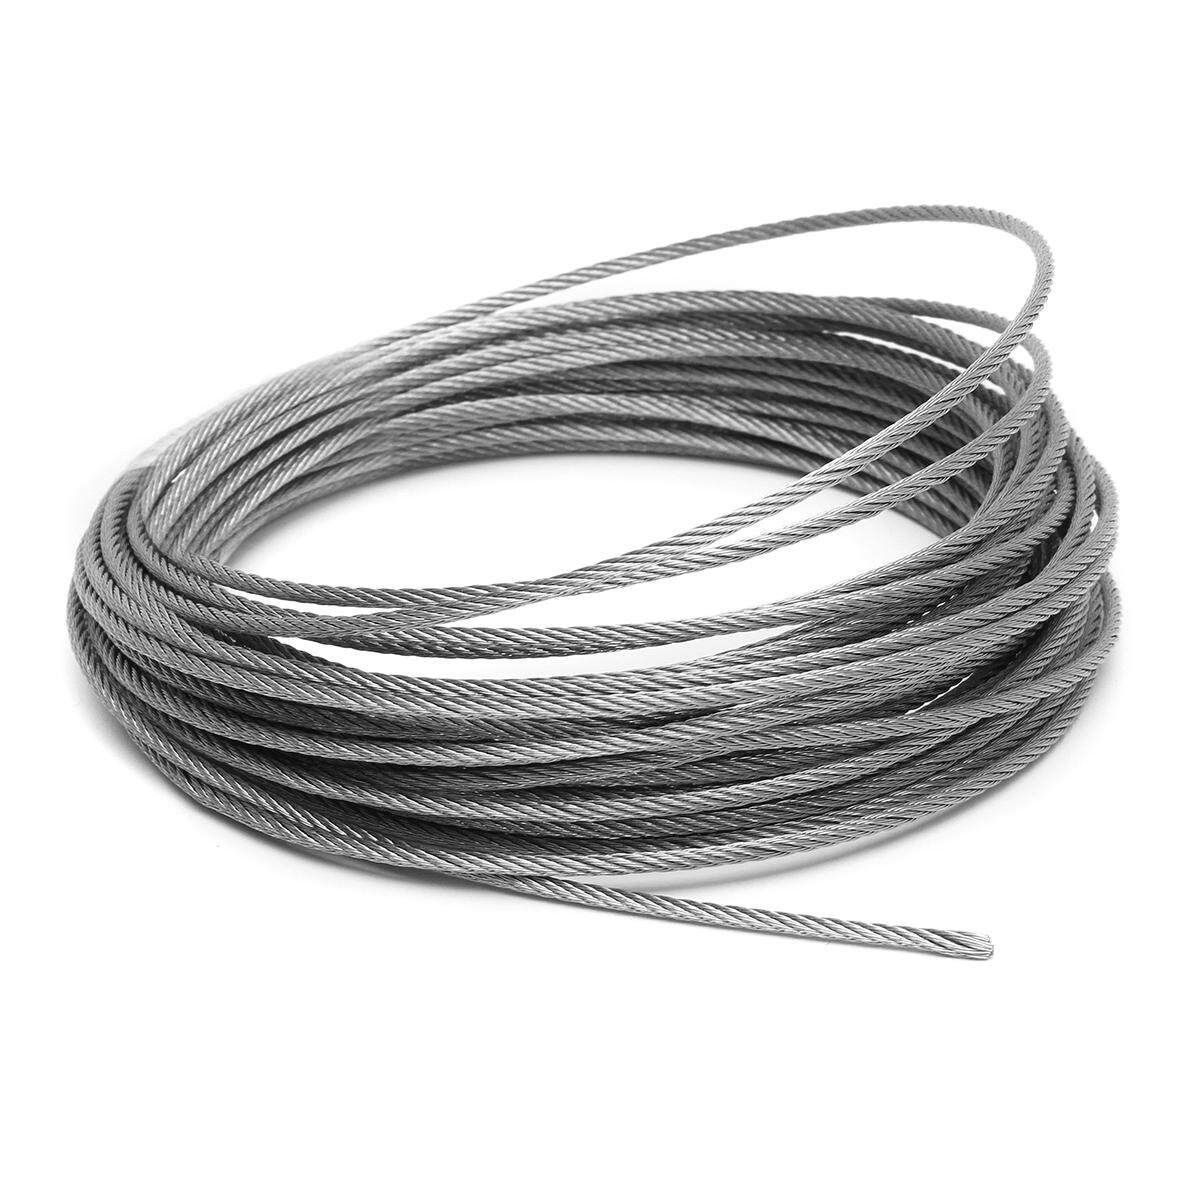 Stainless Steel Wire Rope Tensile Diameter 4mm Structure Cable